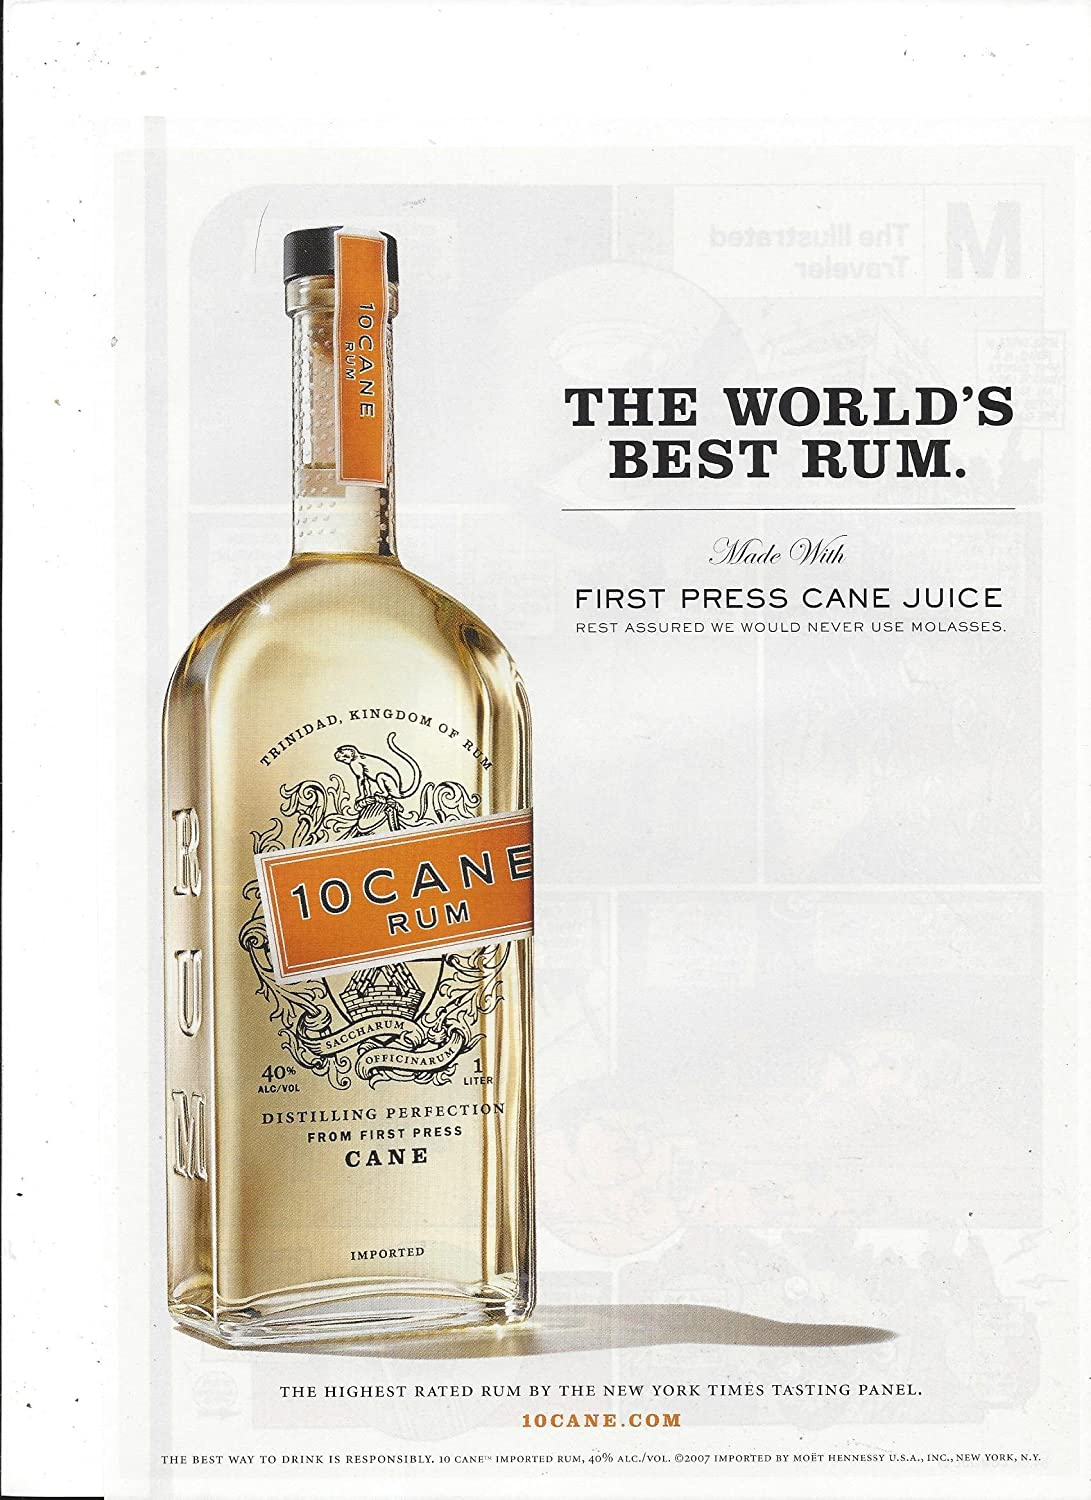 PRINT AD For 10 Cane Rum: The World's Best Rum